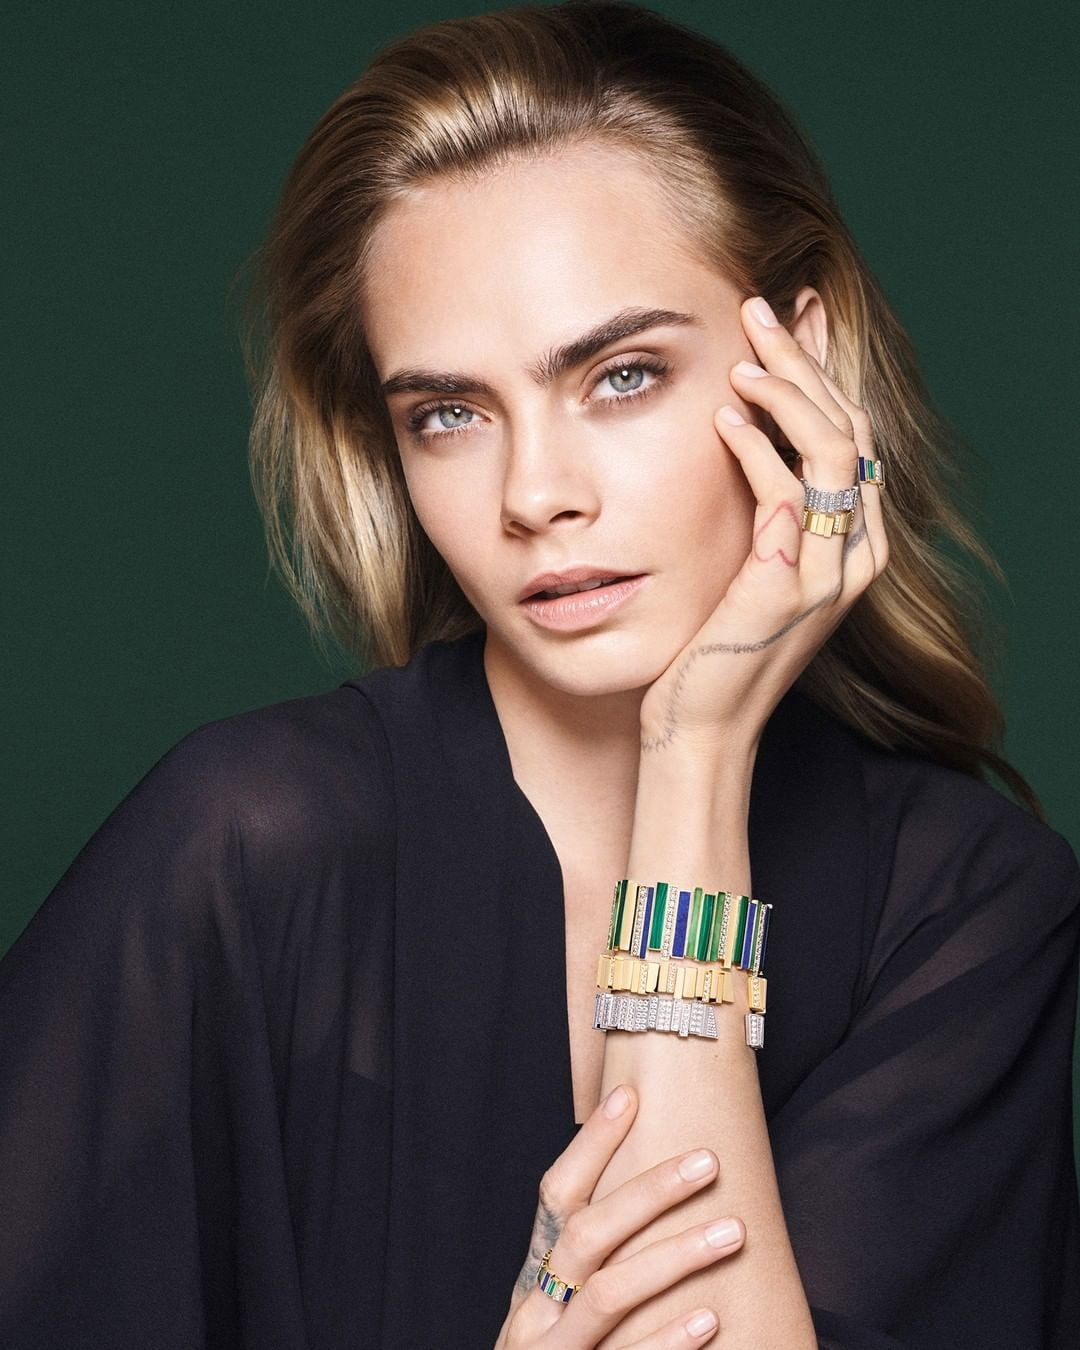 Cara Delevingne photo #980256